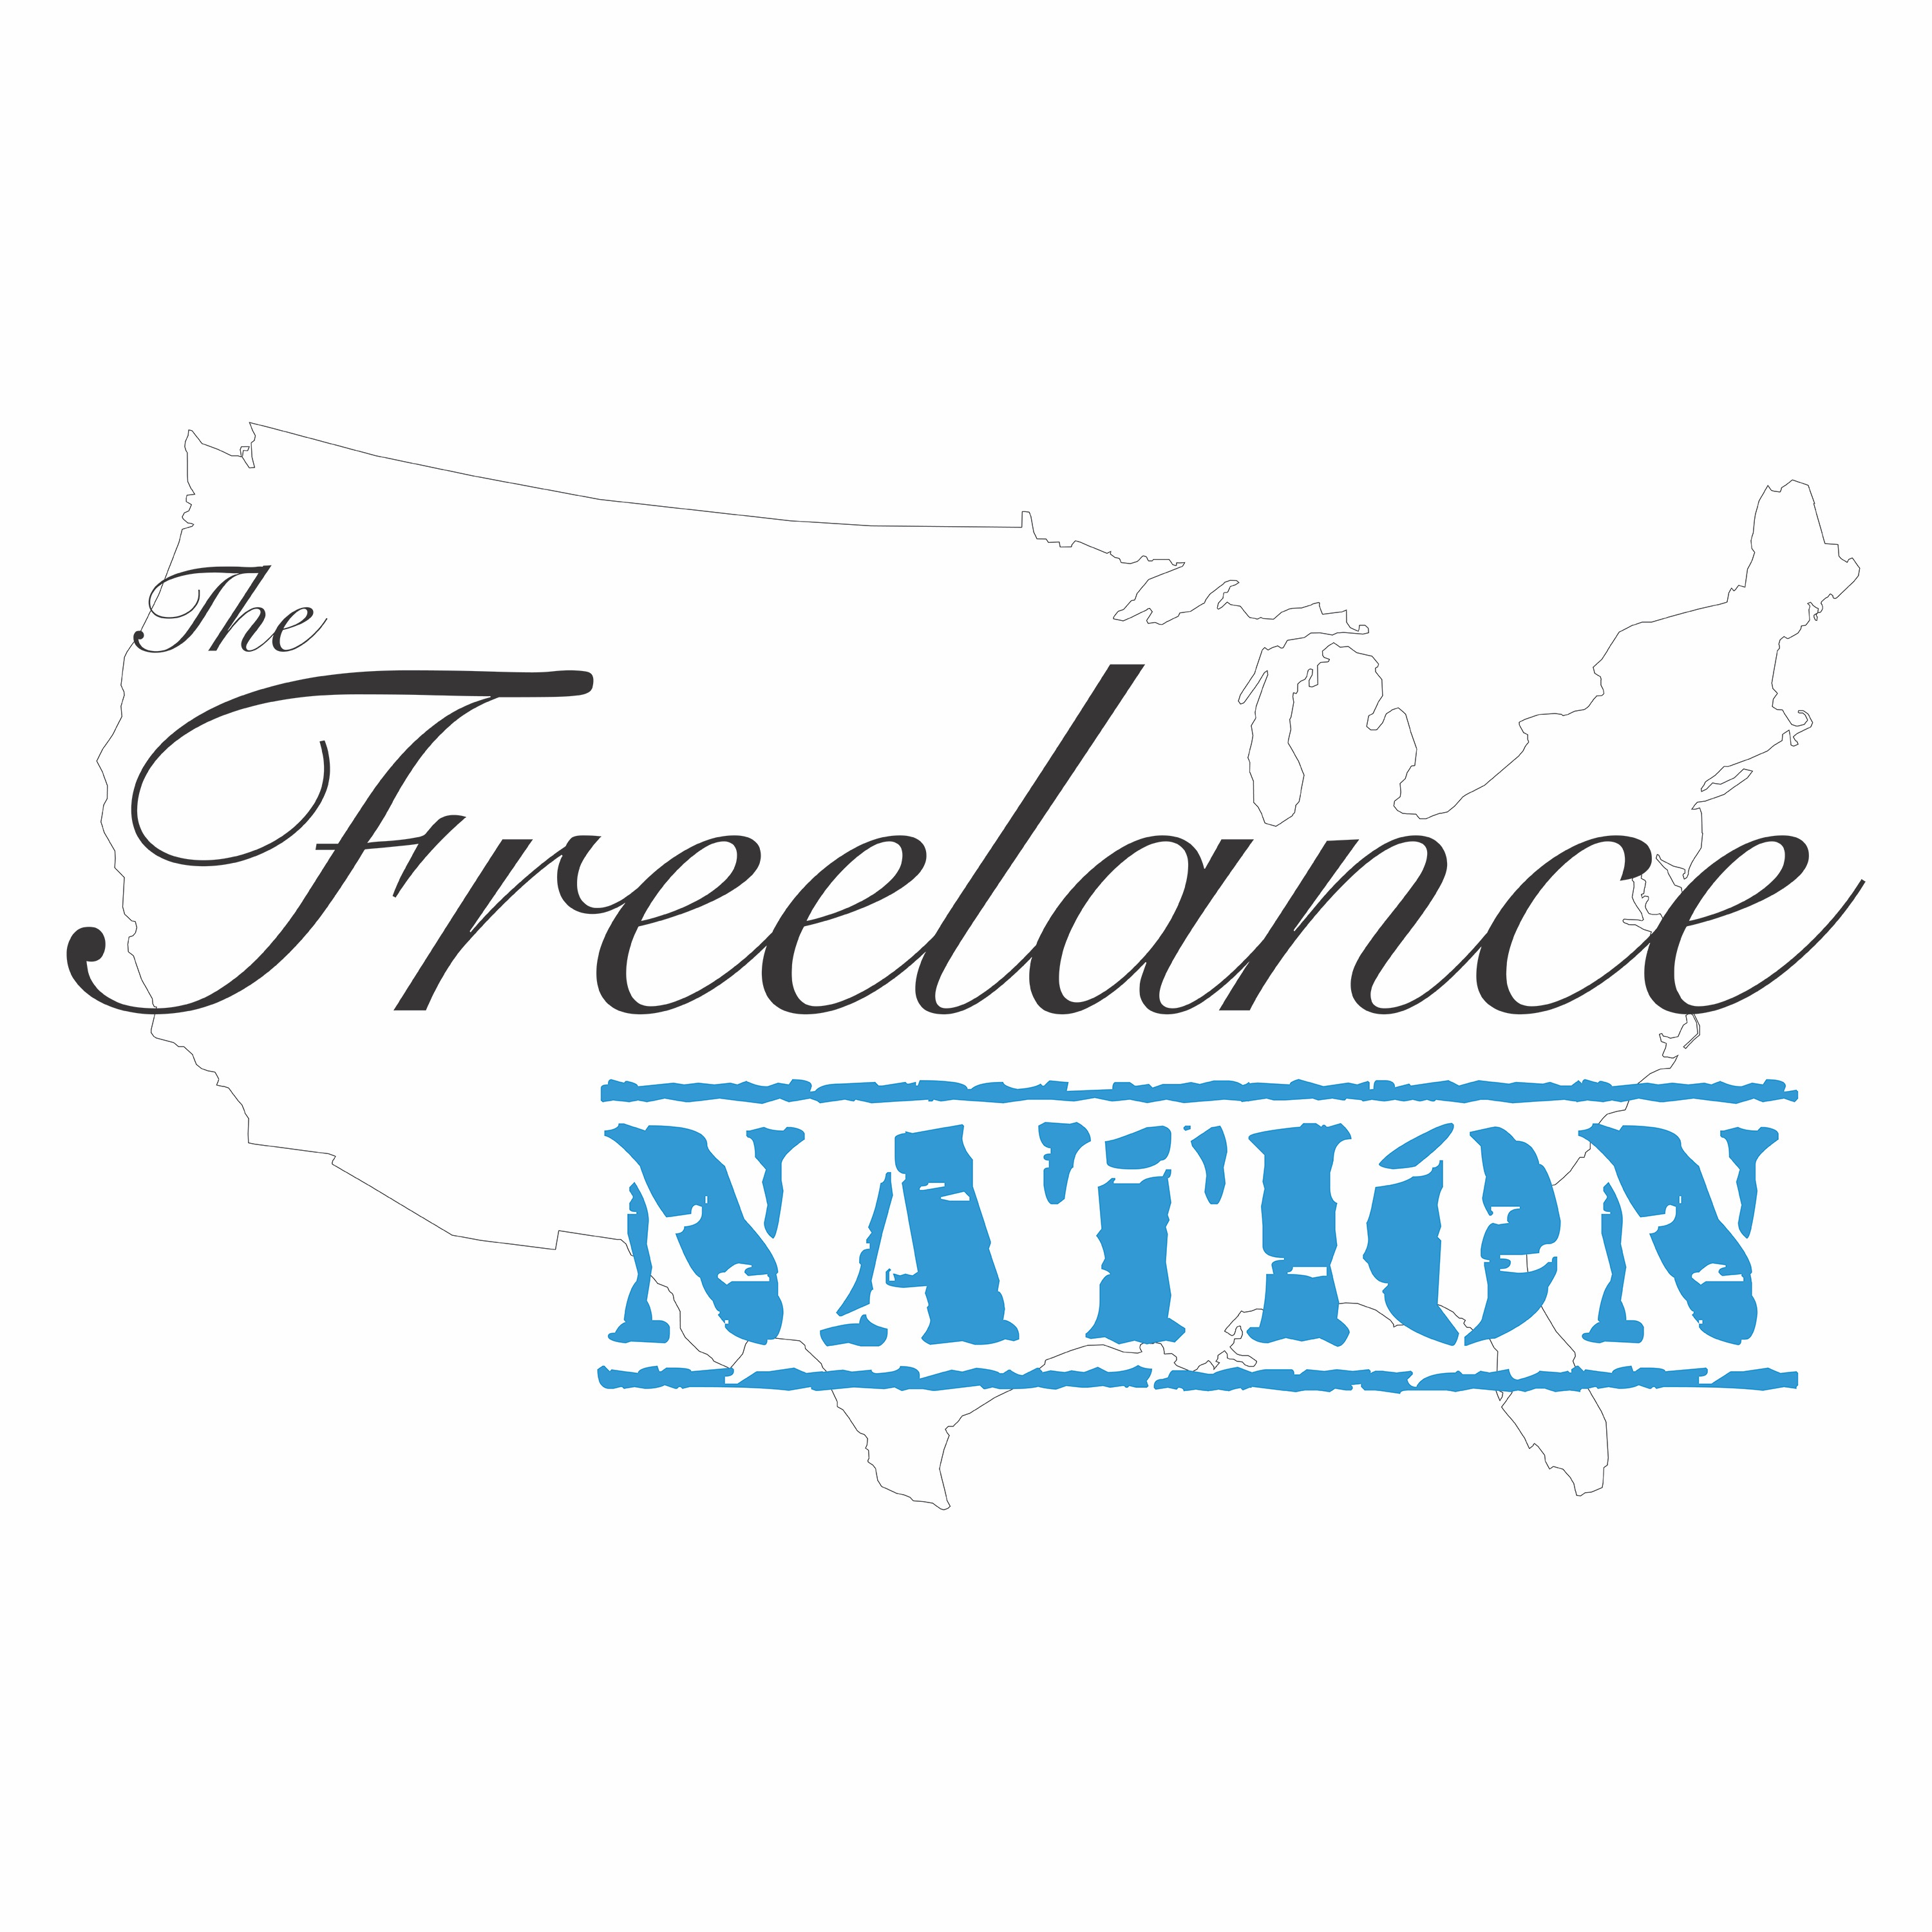 The Freelance Nation